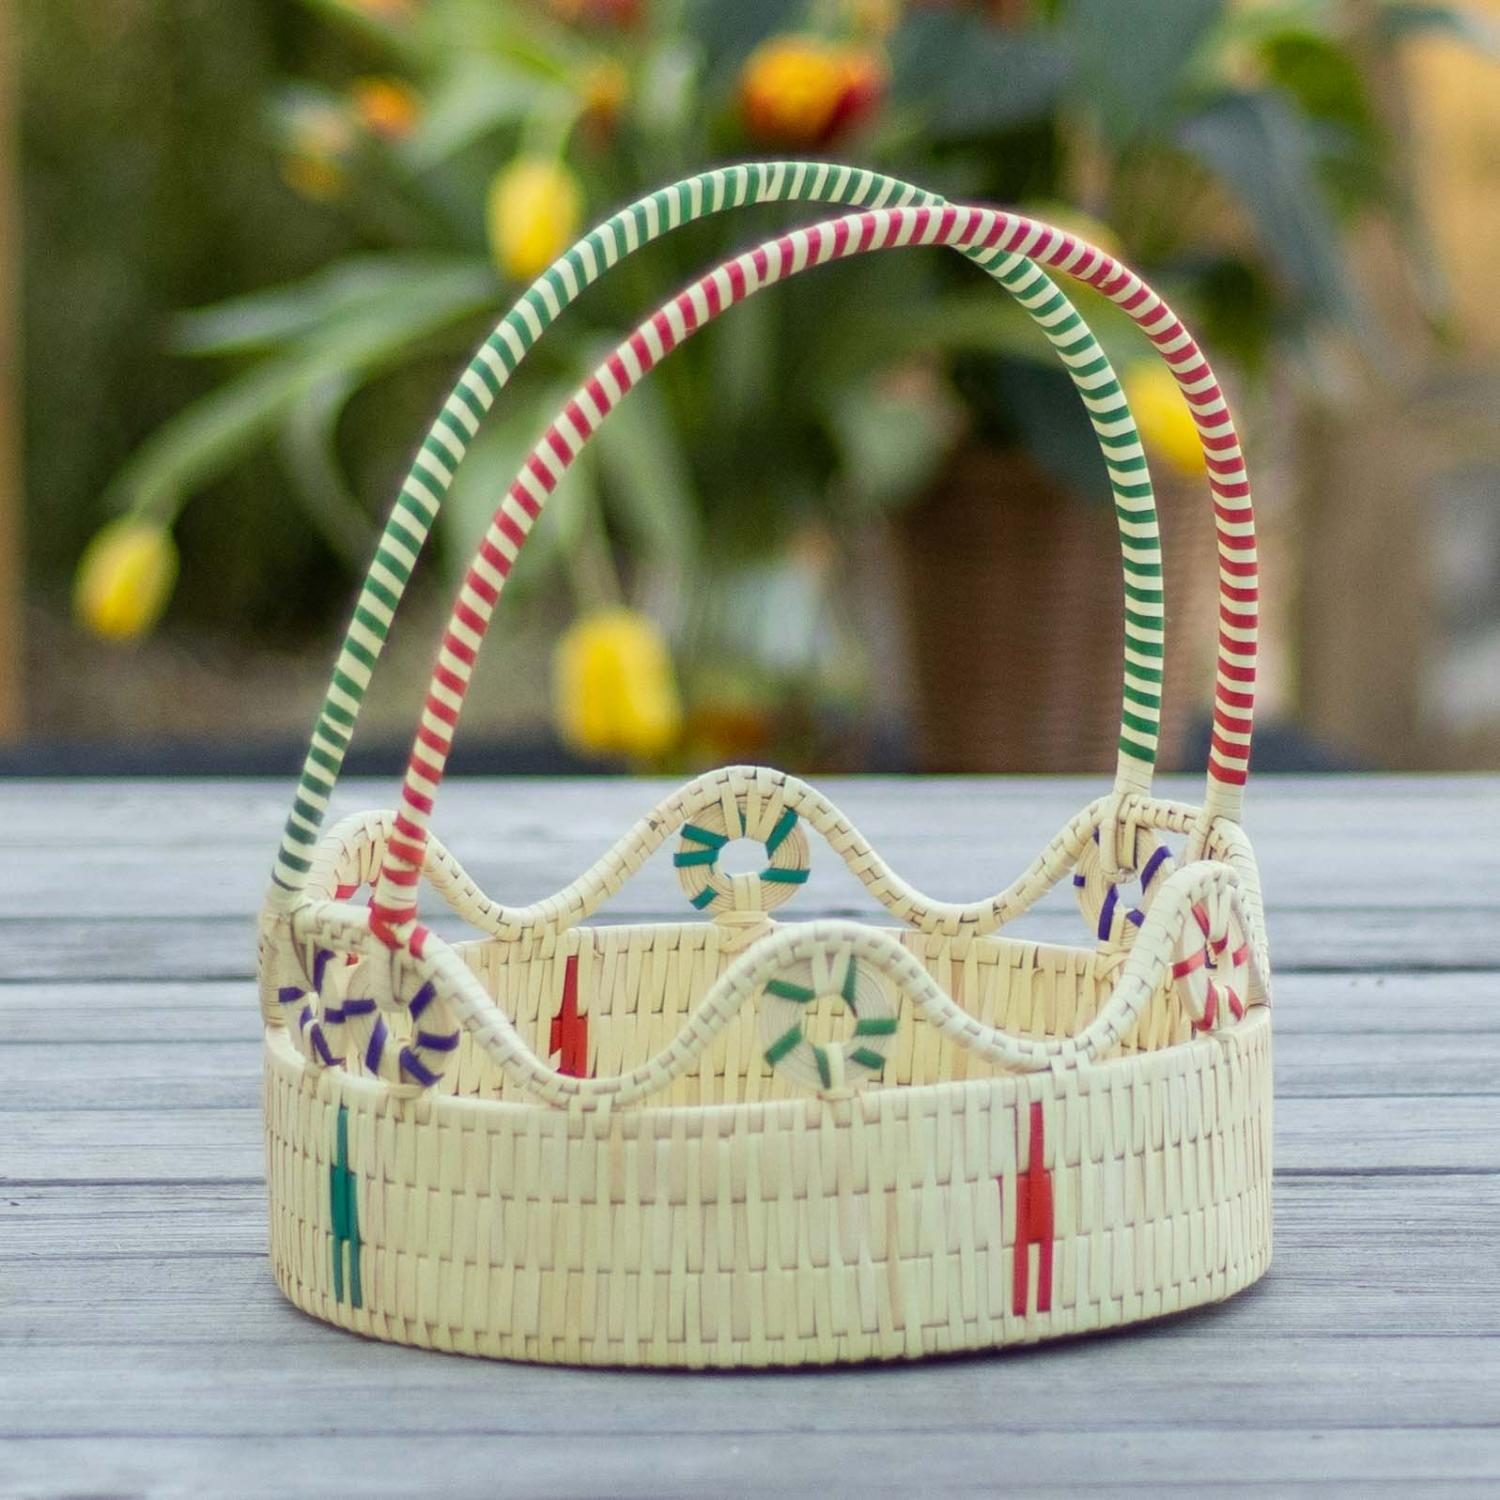 Palm leaf and golden grass basket with red and green handle